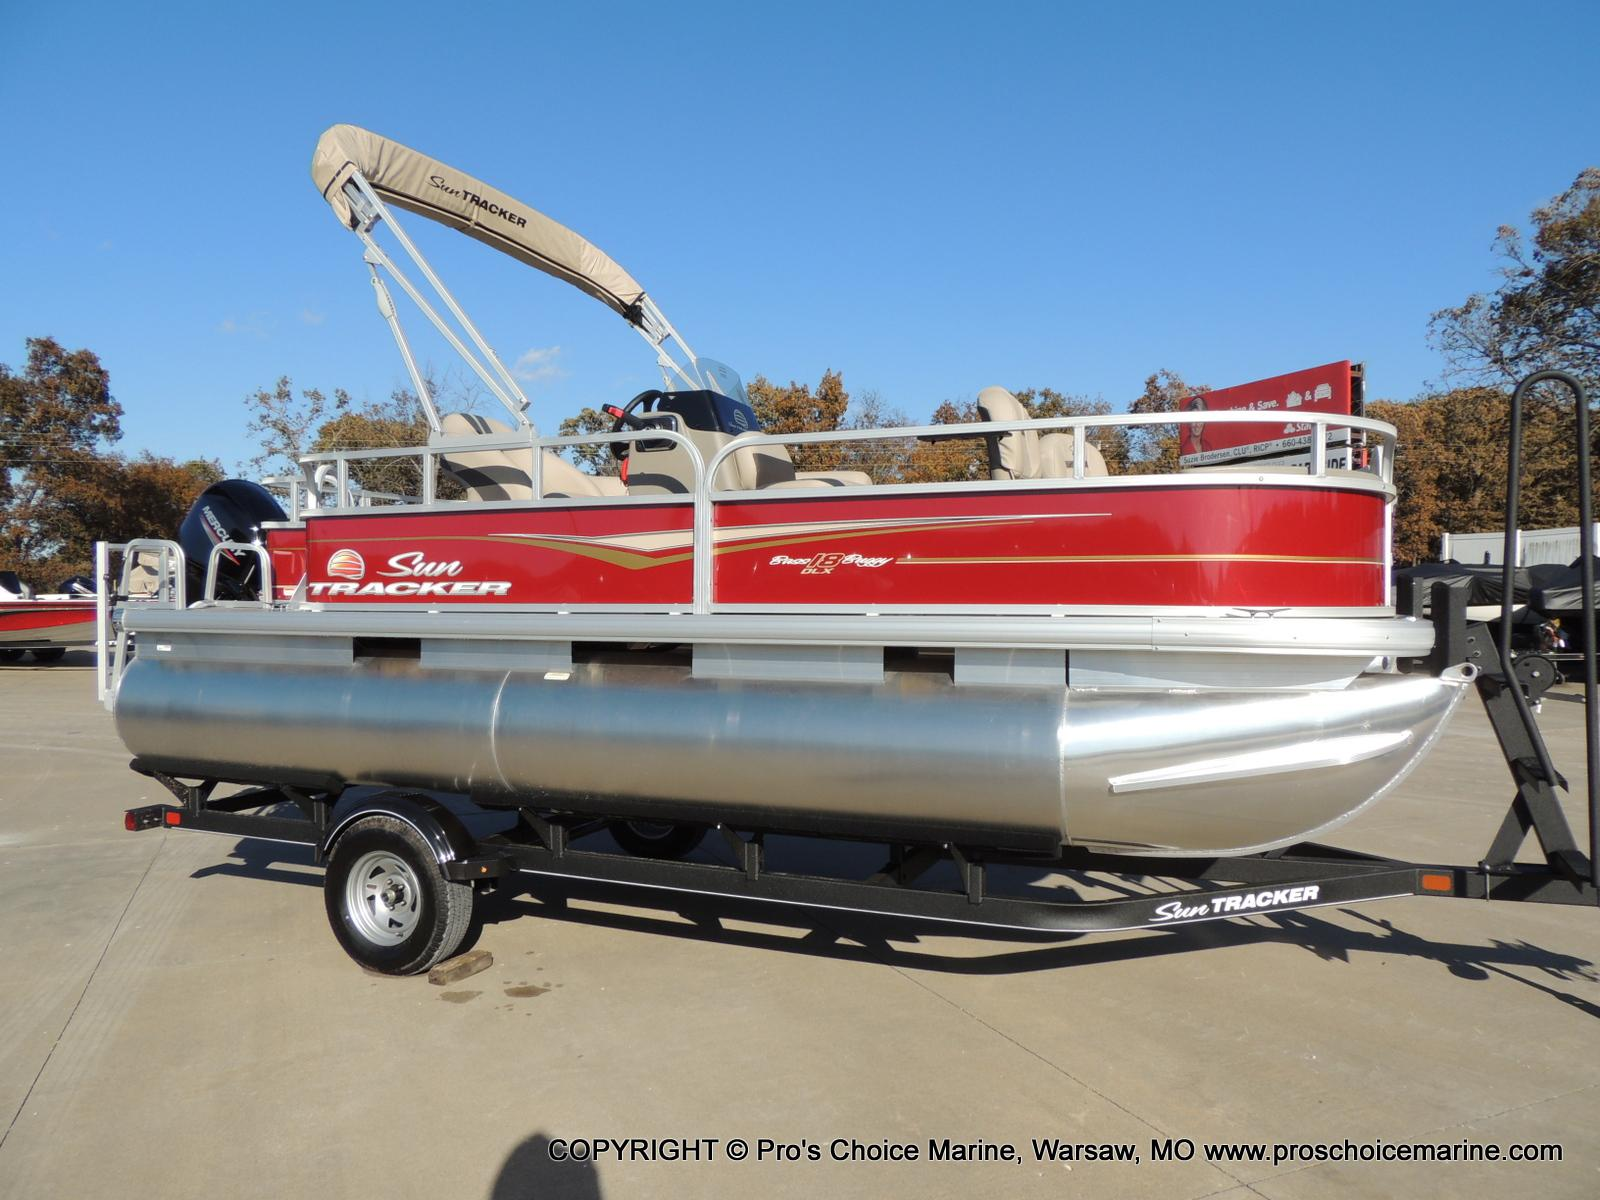 2020 Sun Tracker boat for sale, model of the boat is Bass Buggy 18 DLX & Image # 3 of 50